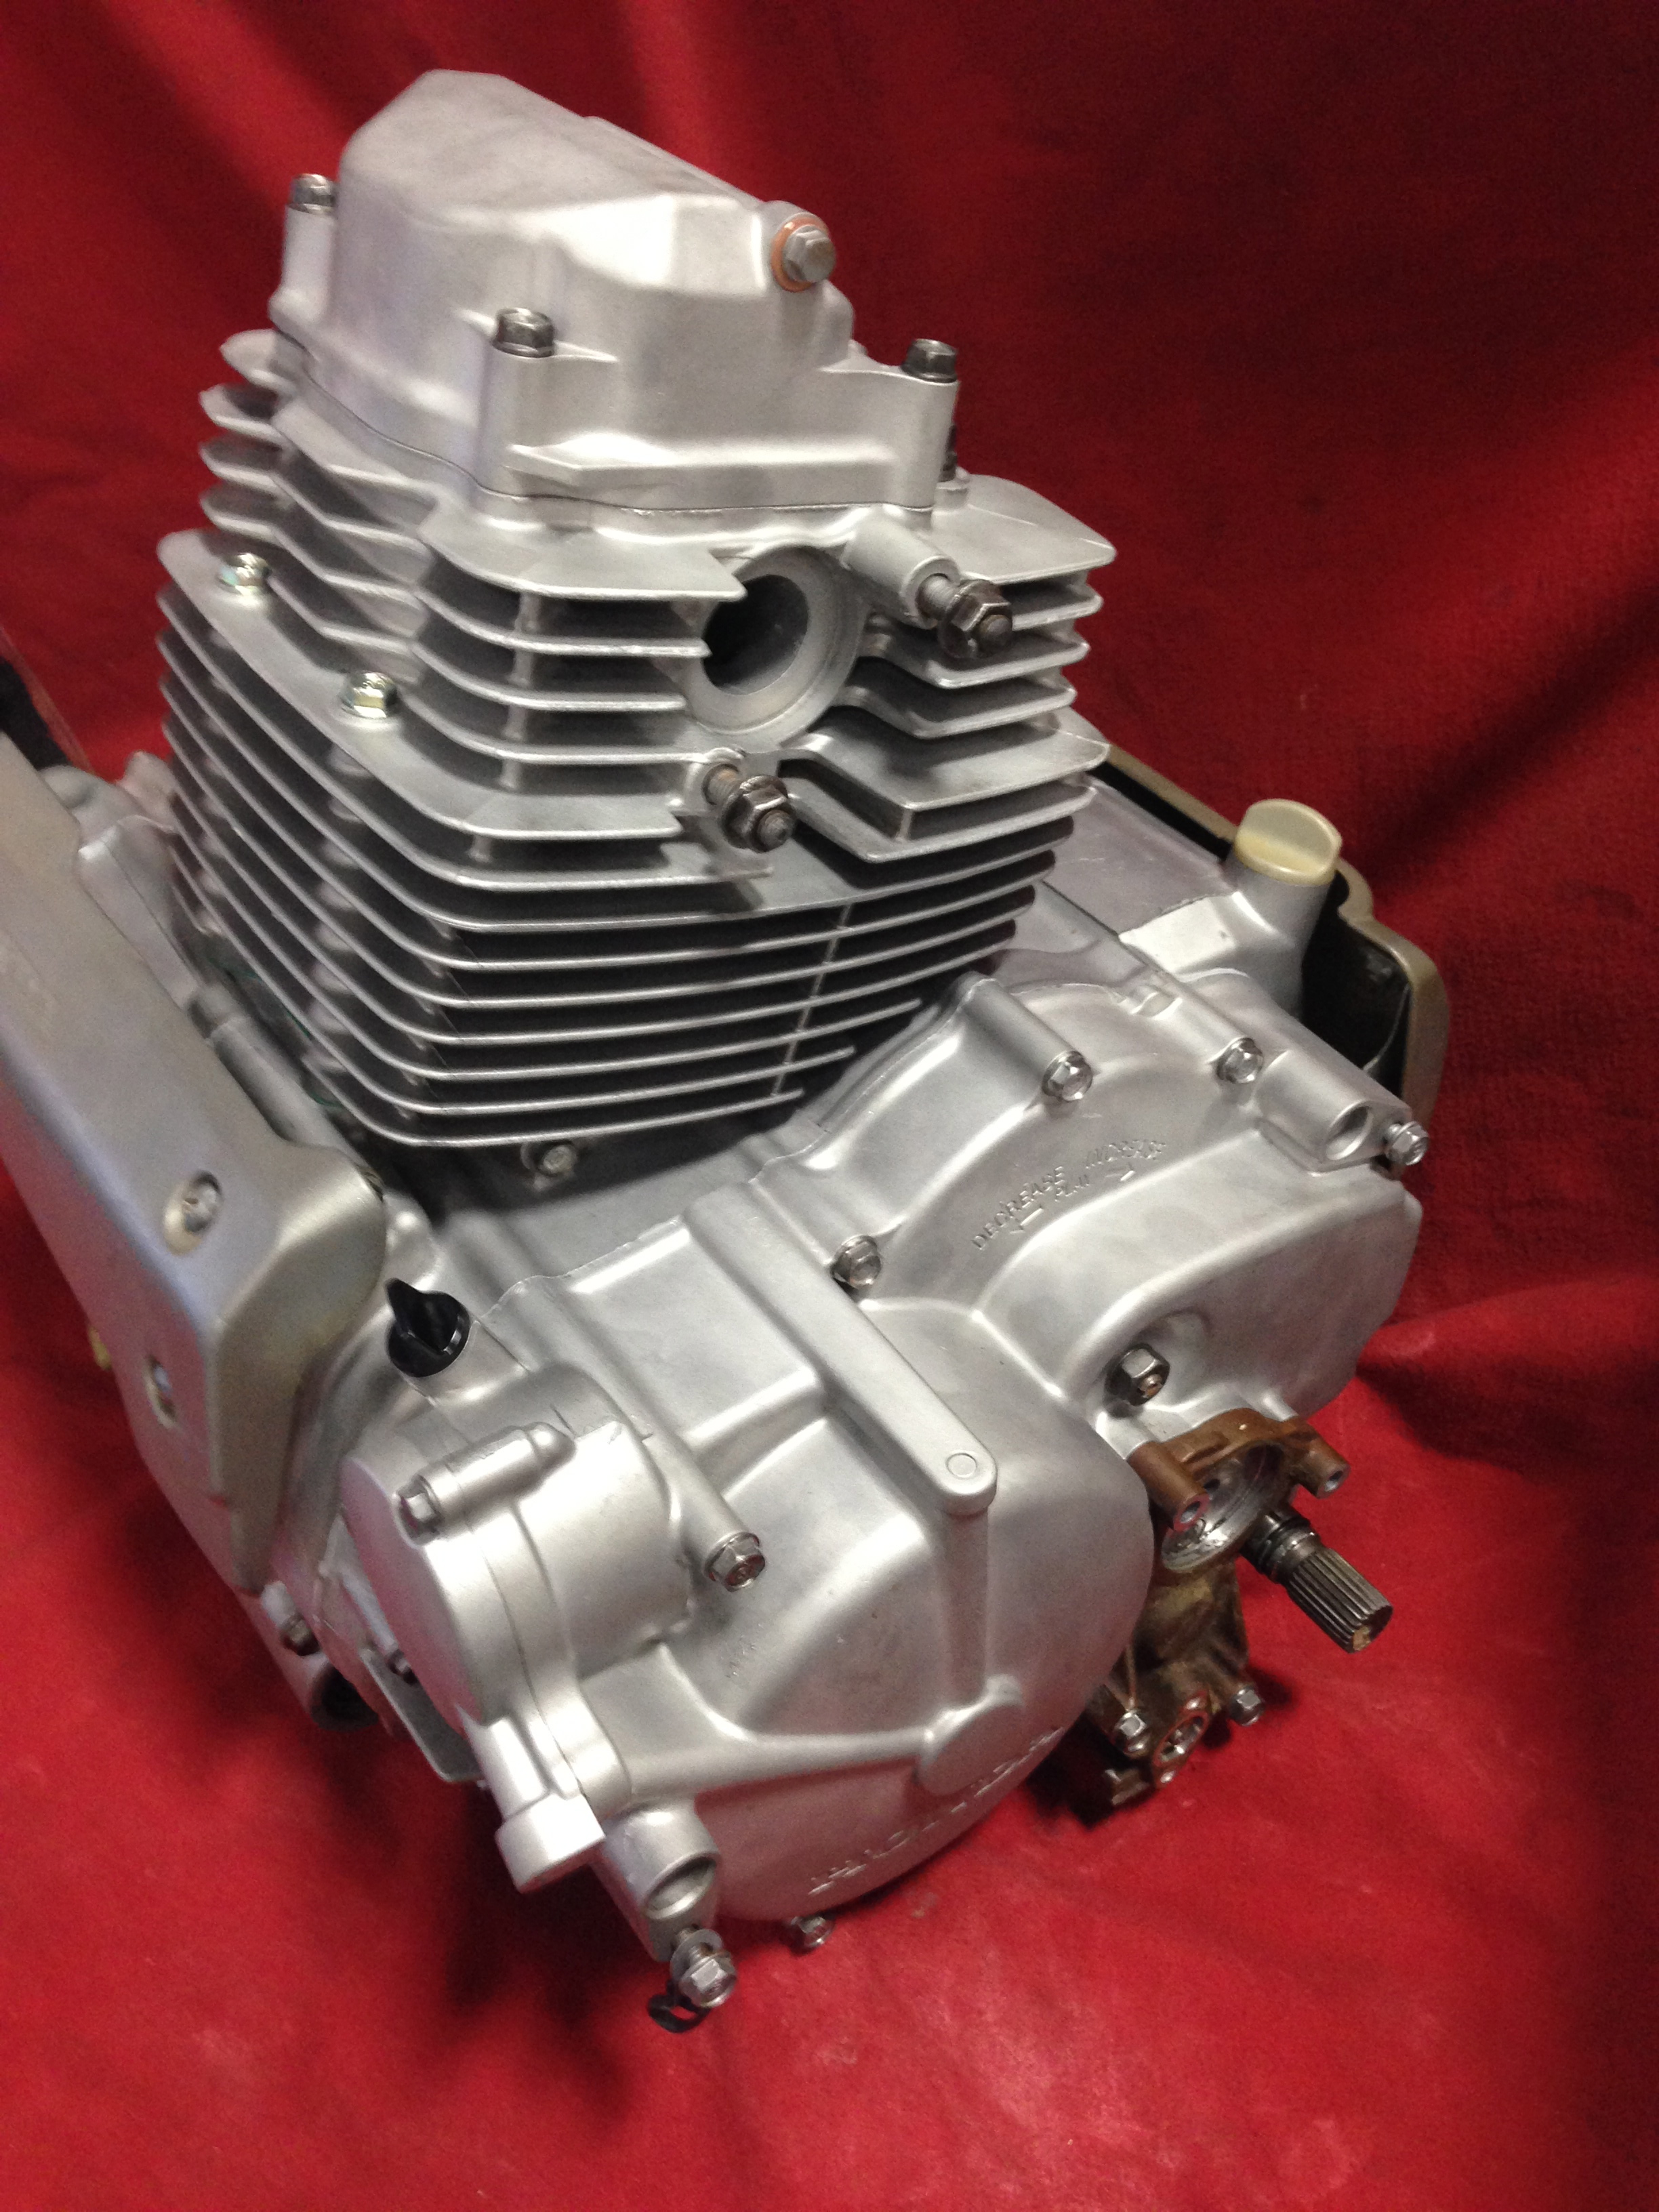 Rebuilt honda trx 350 engine trx 350 atv nflow for Small honda motors for sale